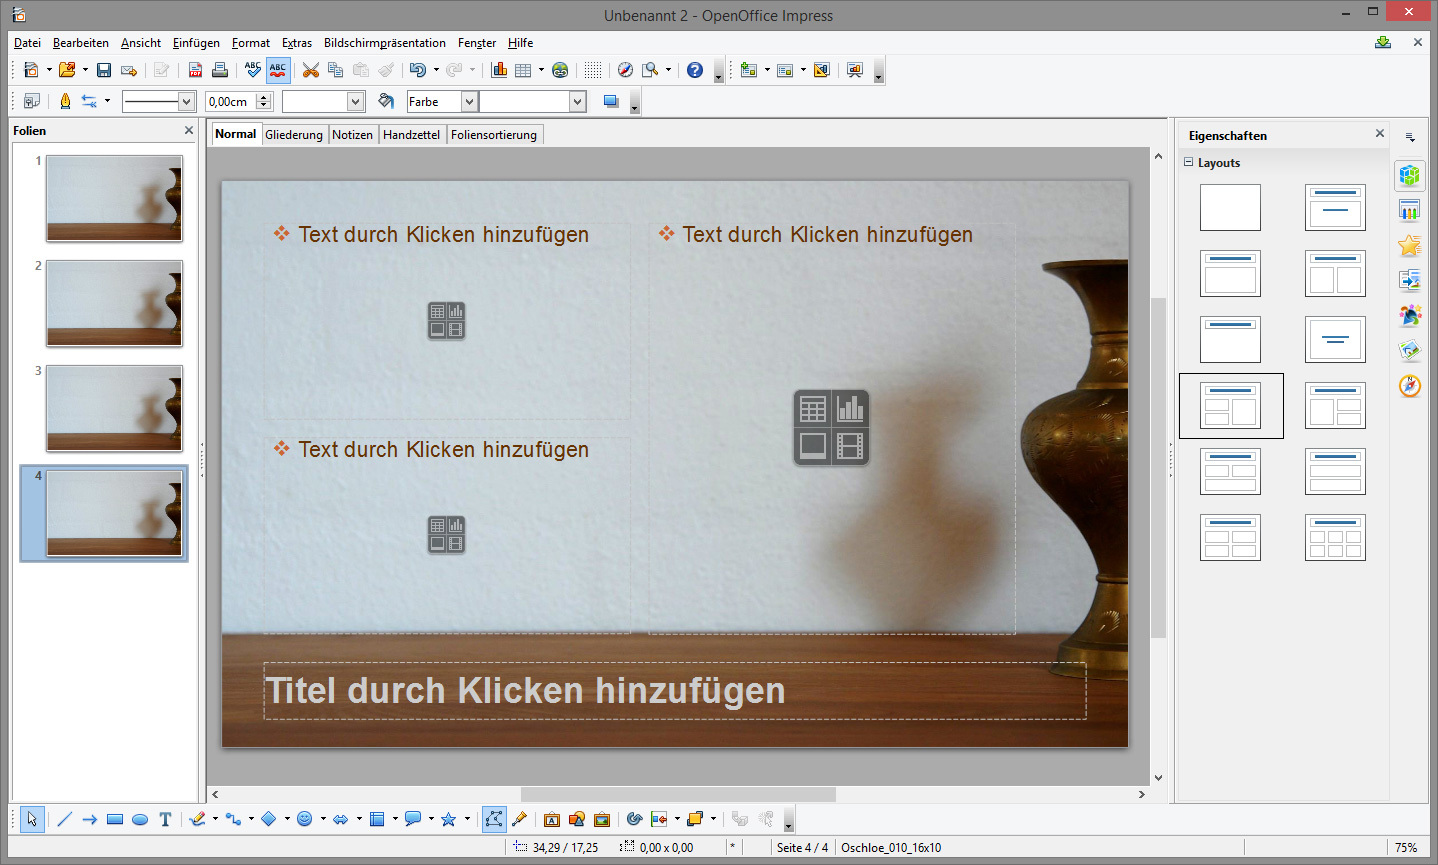 Libre Office Impress Vorlagen Für Openoffice Libreoffice Download Kostenlos